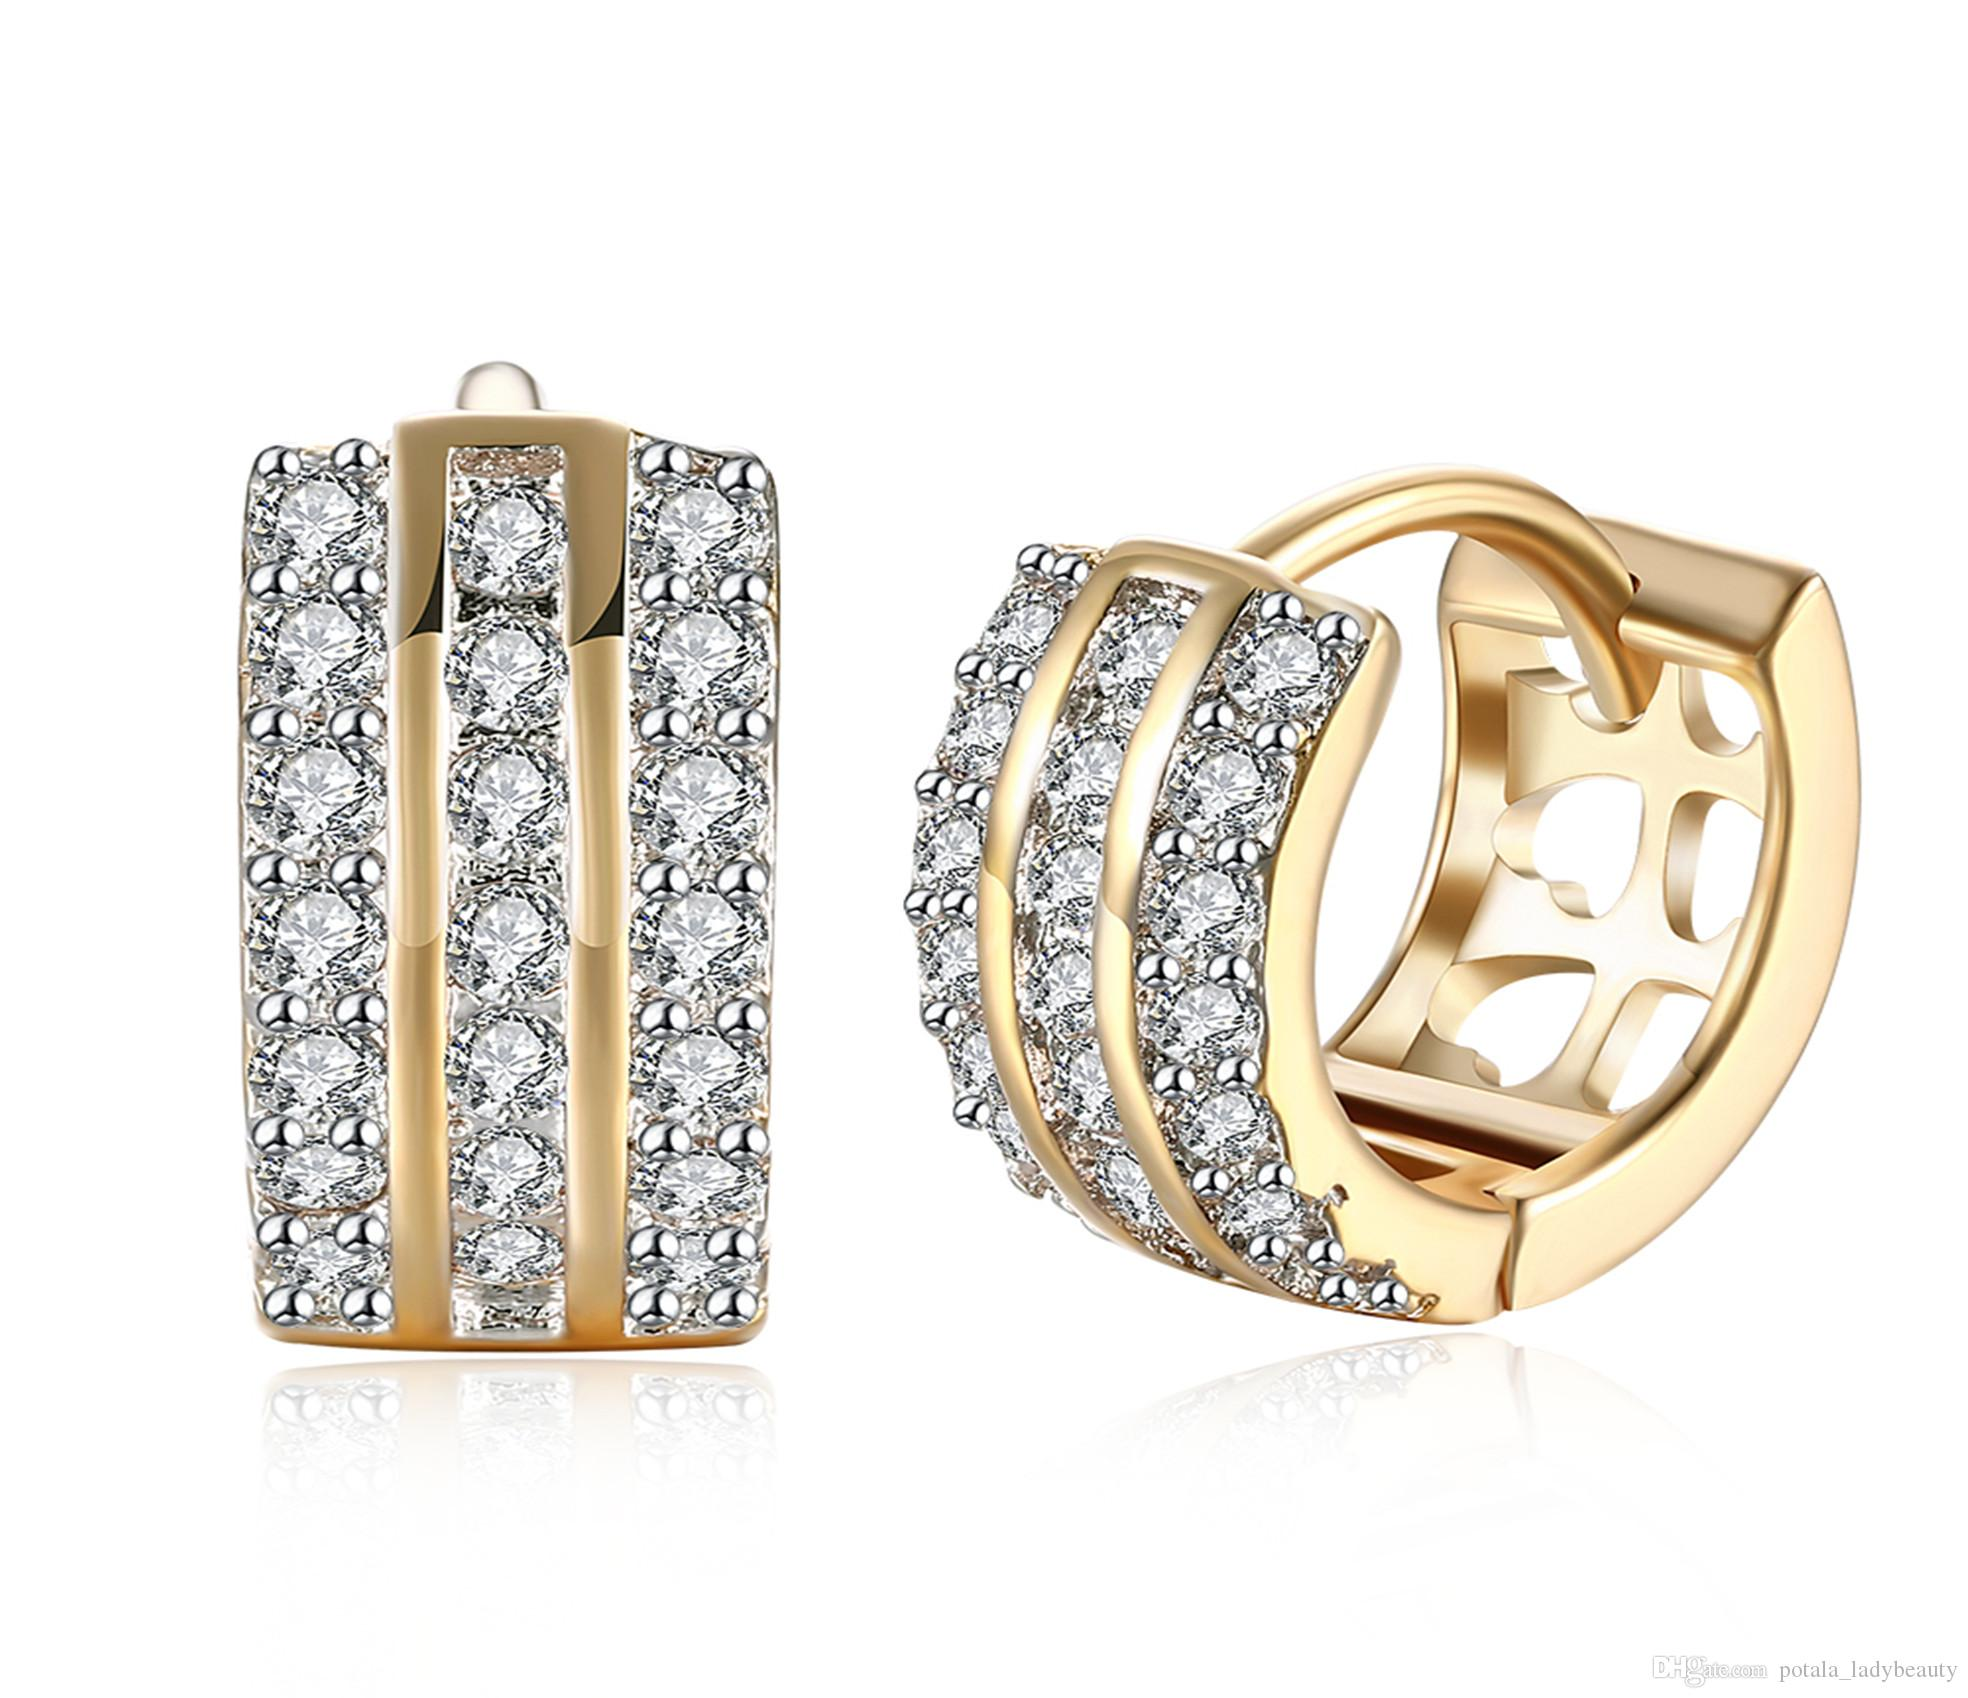 0260739f6 2019 Zircon Earrings Three Rows Pattern Clip On And Screw Back Earring  Accessories Romantic Thanksgiving Day Unique Design Jewelry Gift POTALA142  From ...